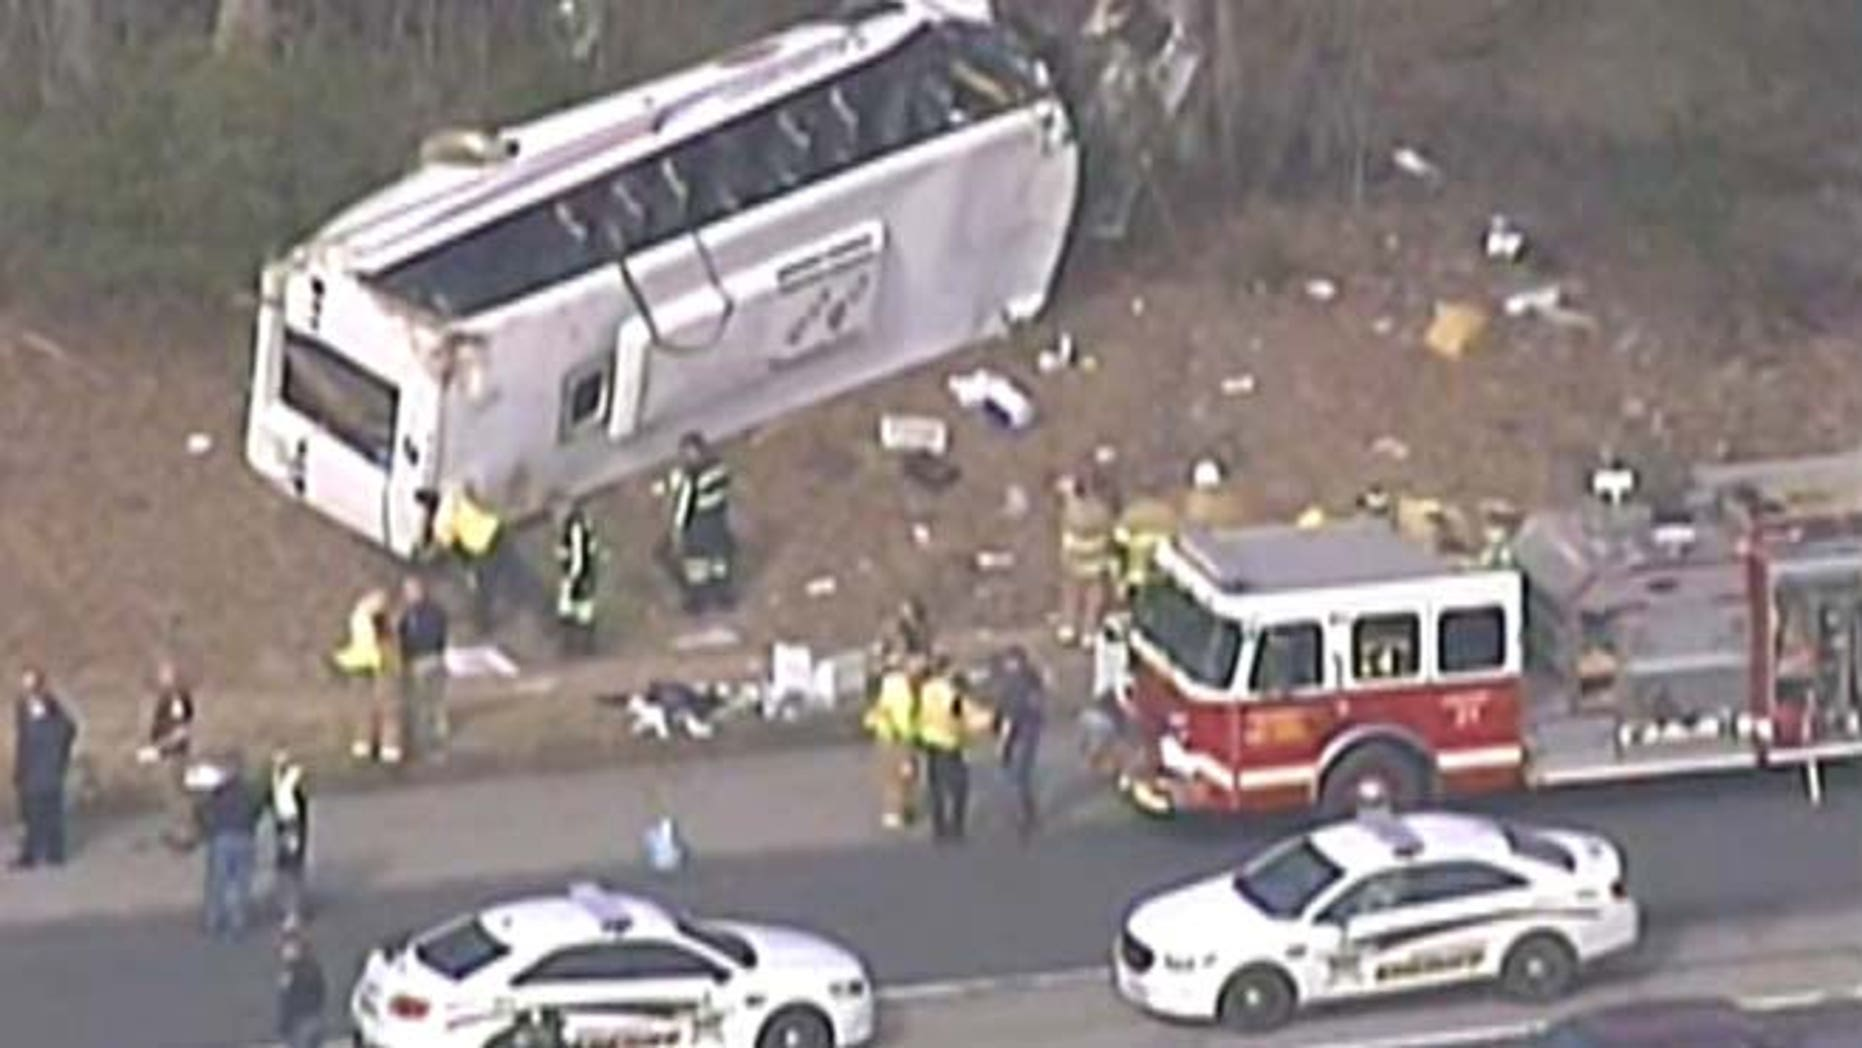 March 12, 2015: Indiana State Police say at least 20 people are injured, including children, after a tour bus overturned on Interstate 65 in southern Indiana, RTV6 reports.